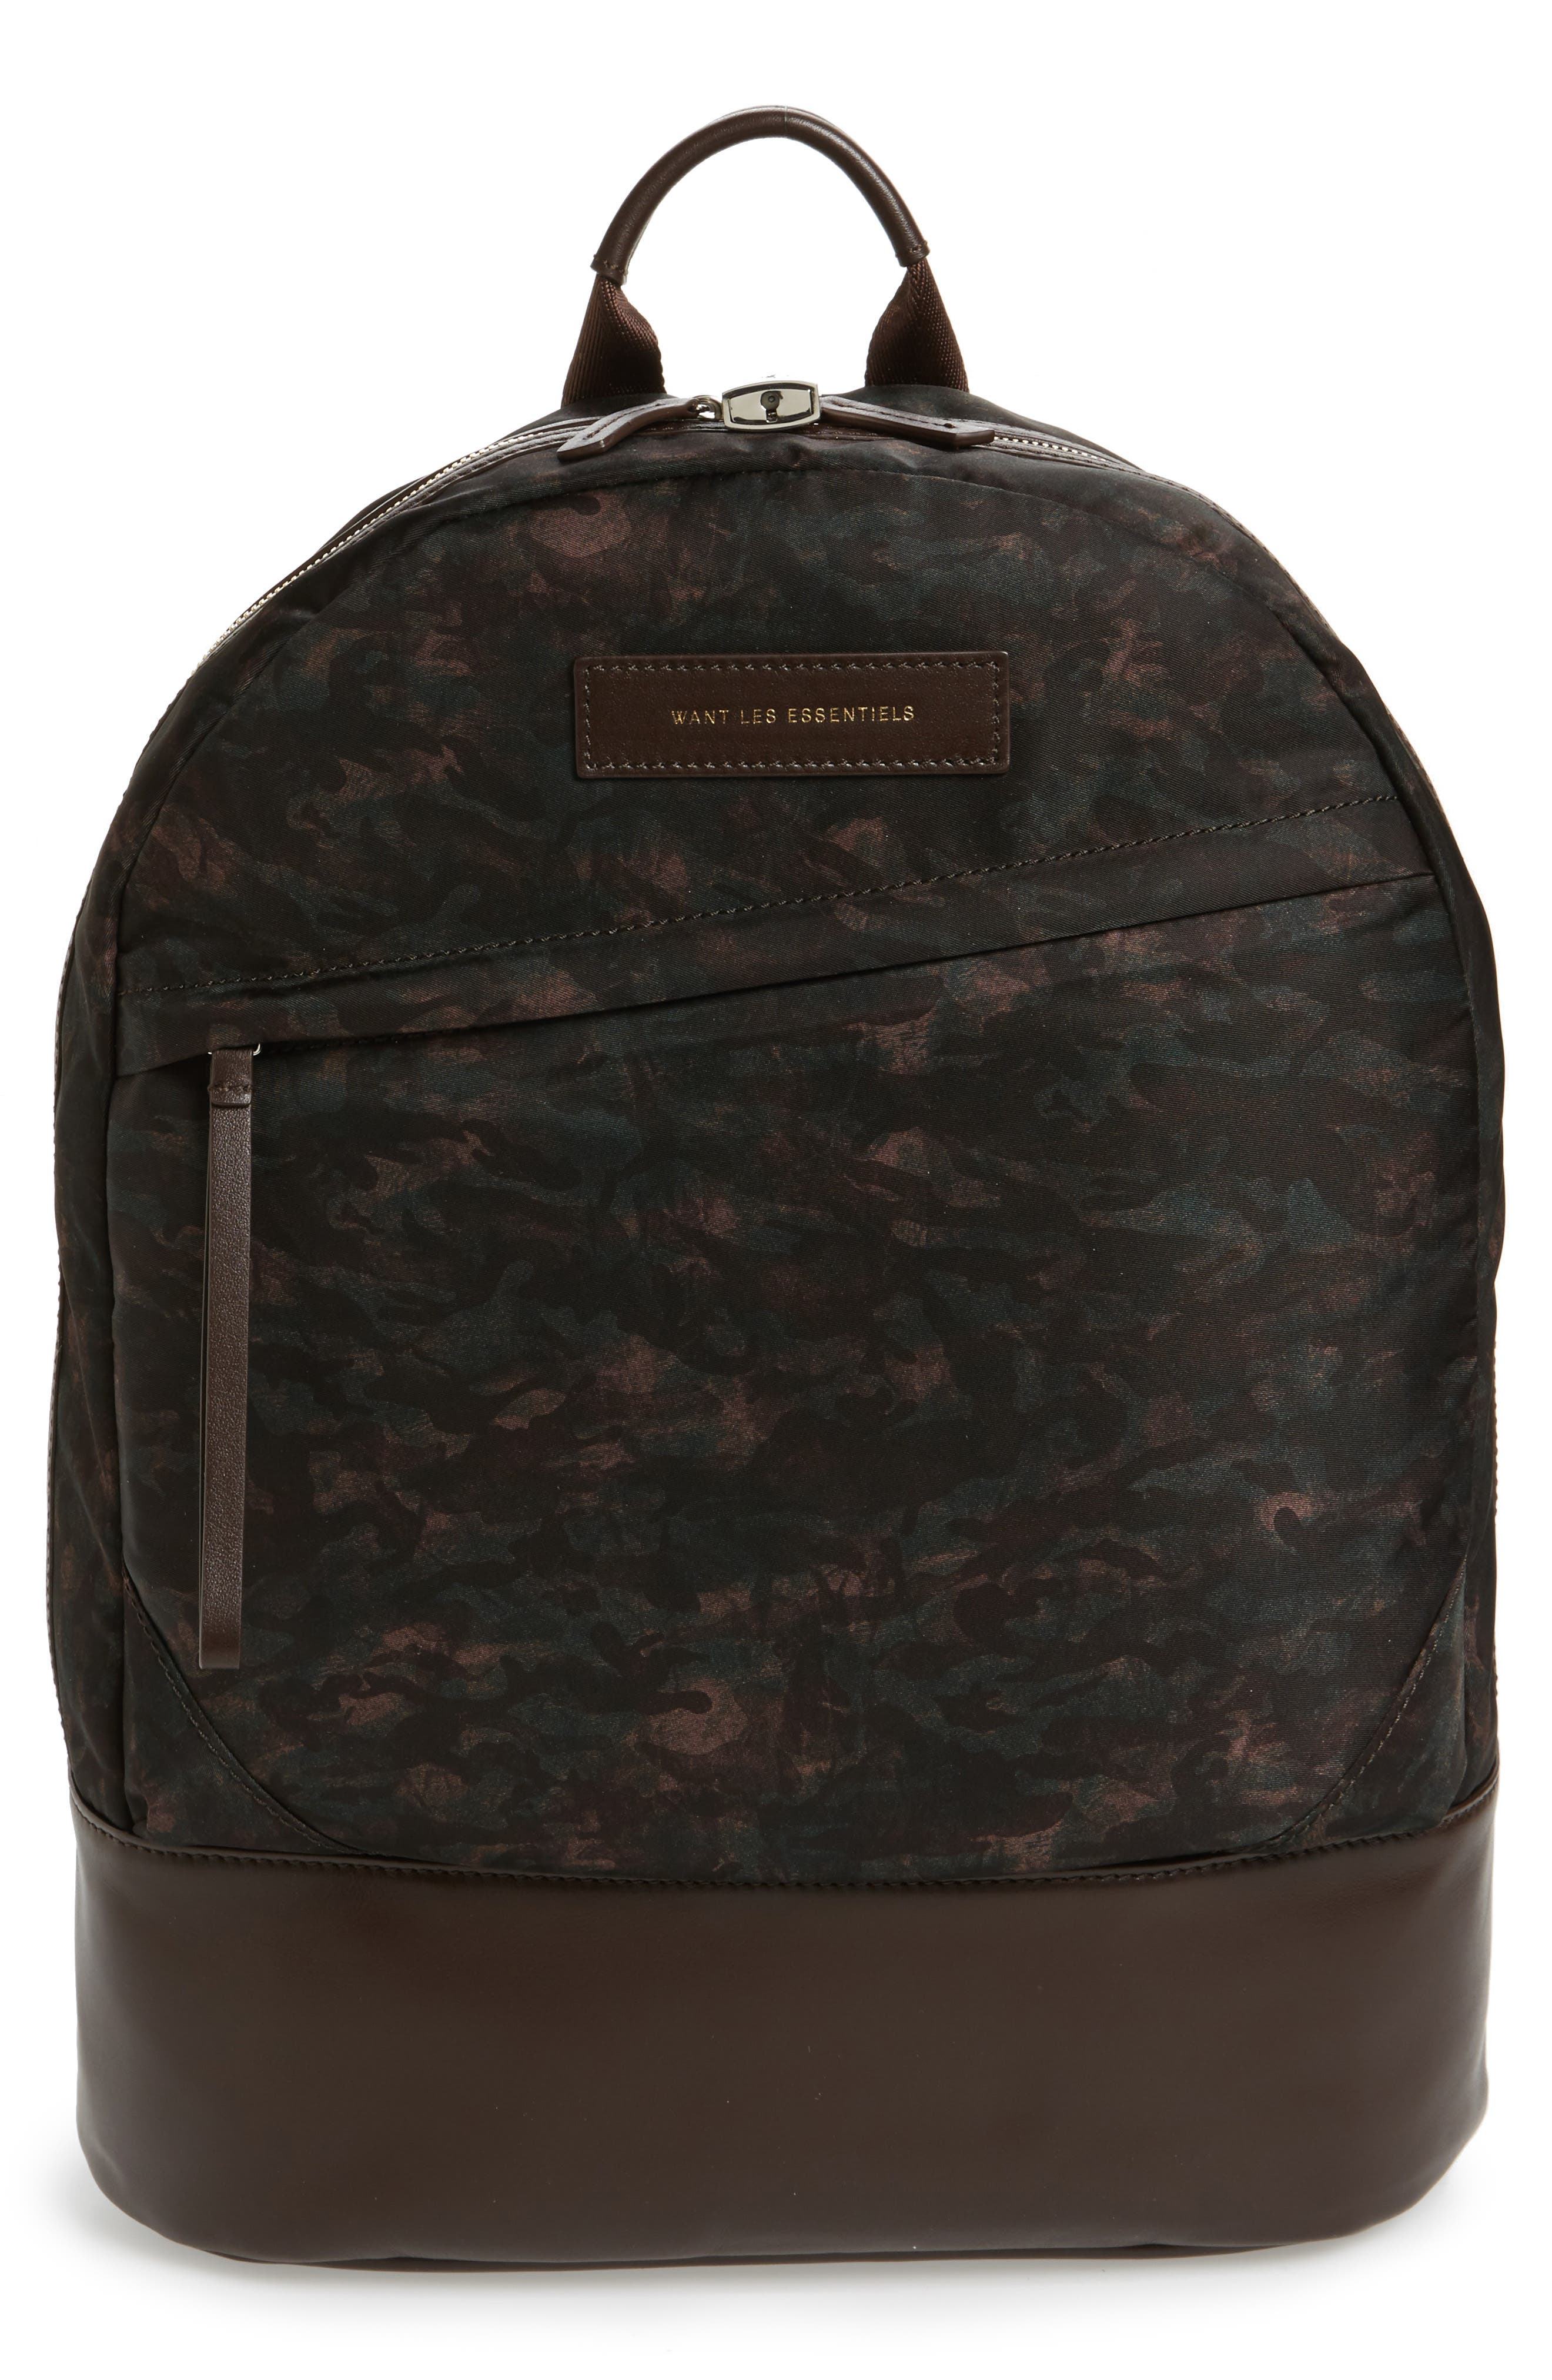 WANT LES ESSENTIELS Katstrup Backpack